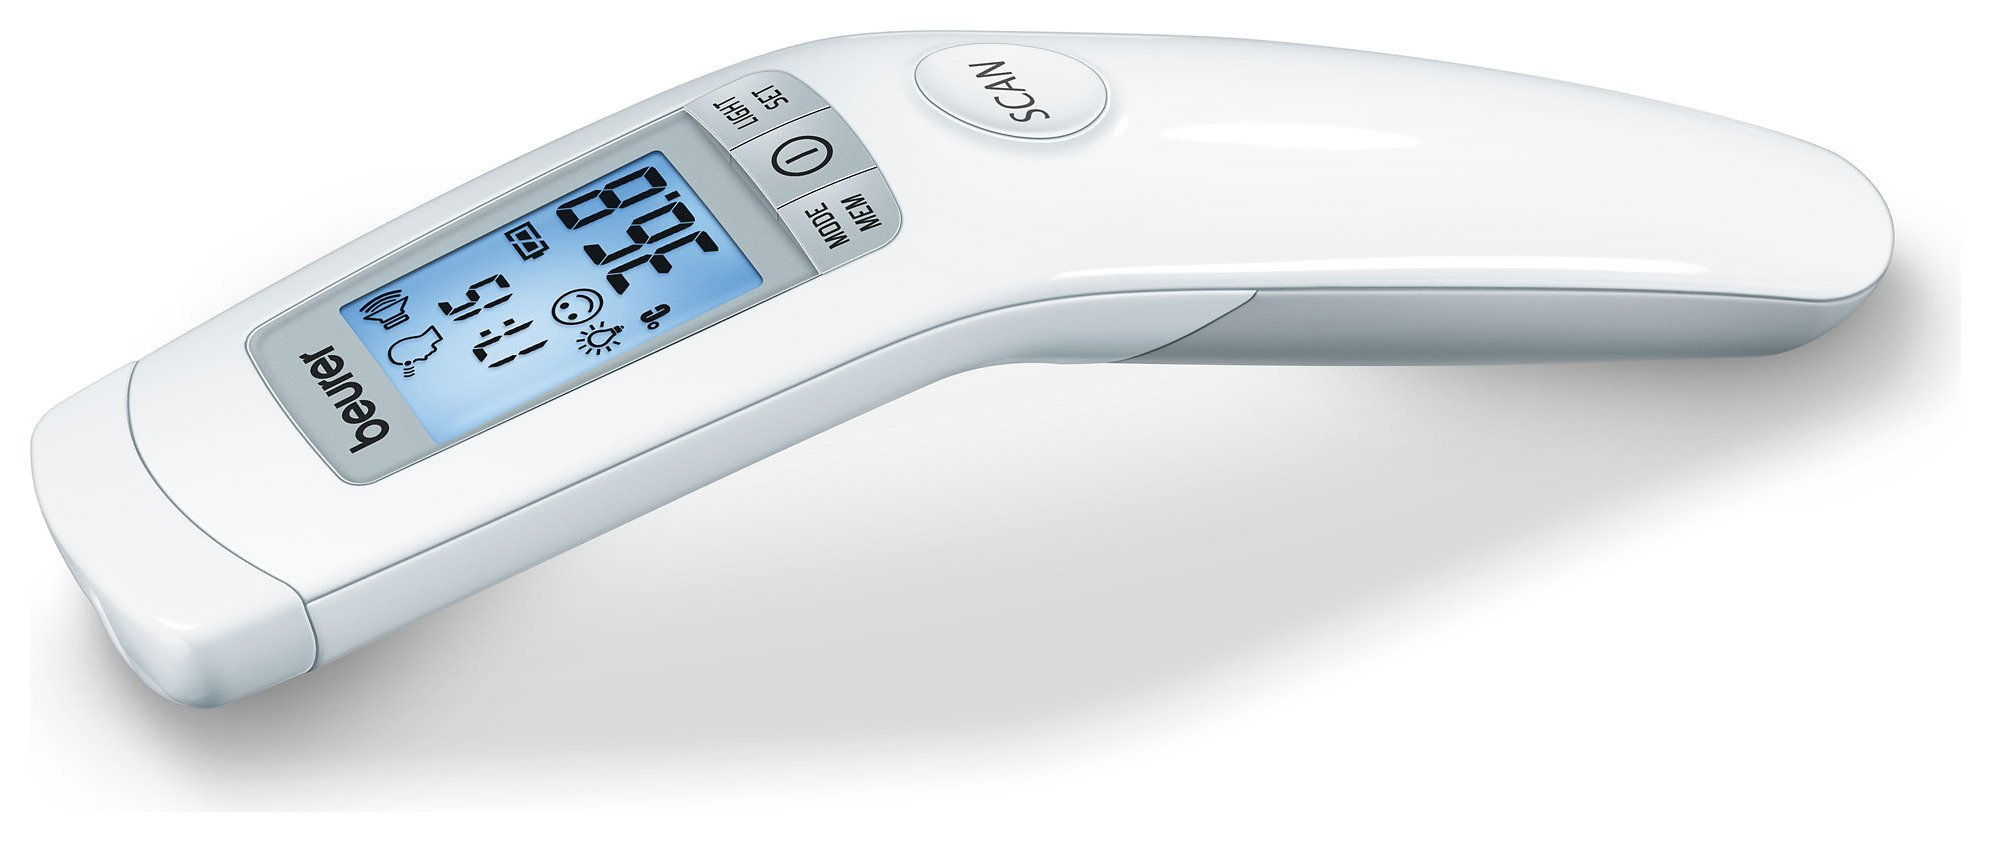 Beurer FT90 Non Contact Thermometer.